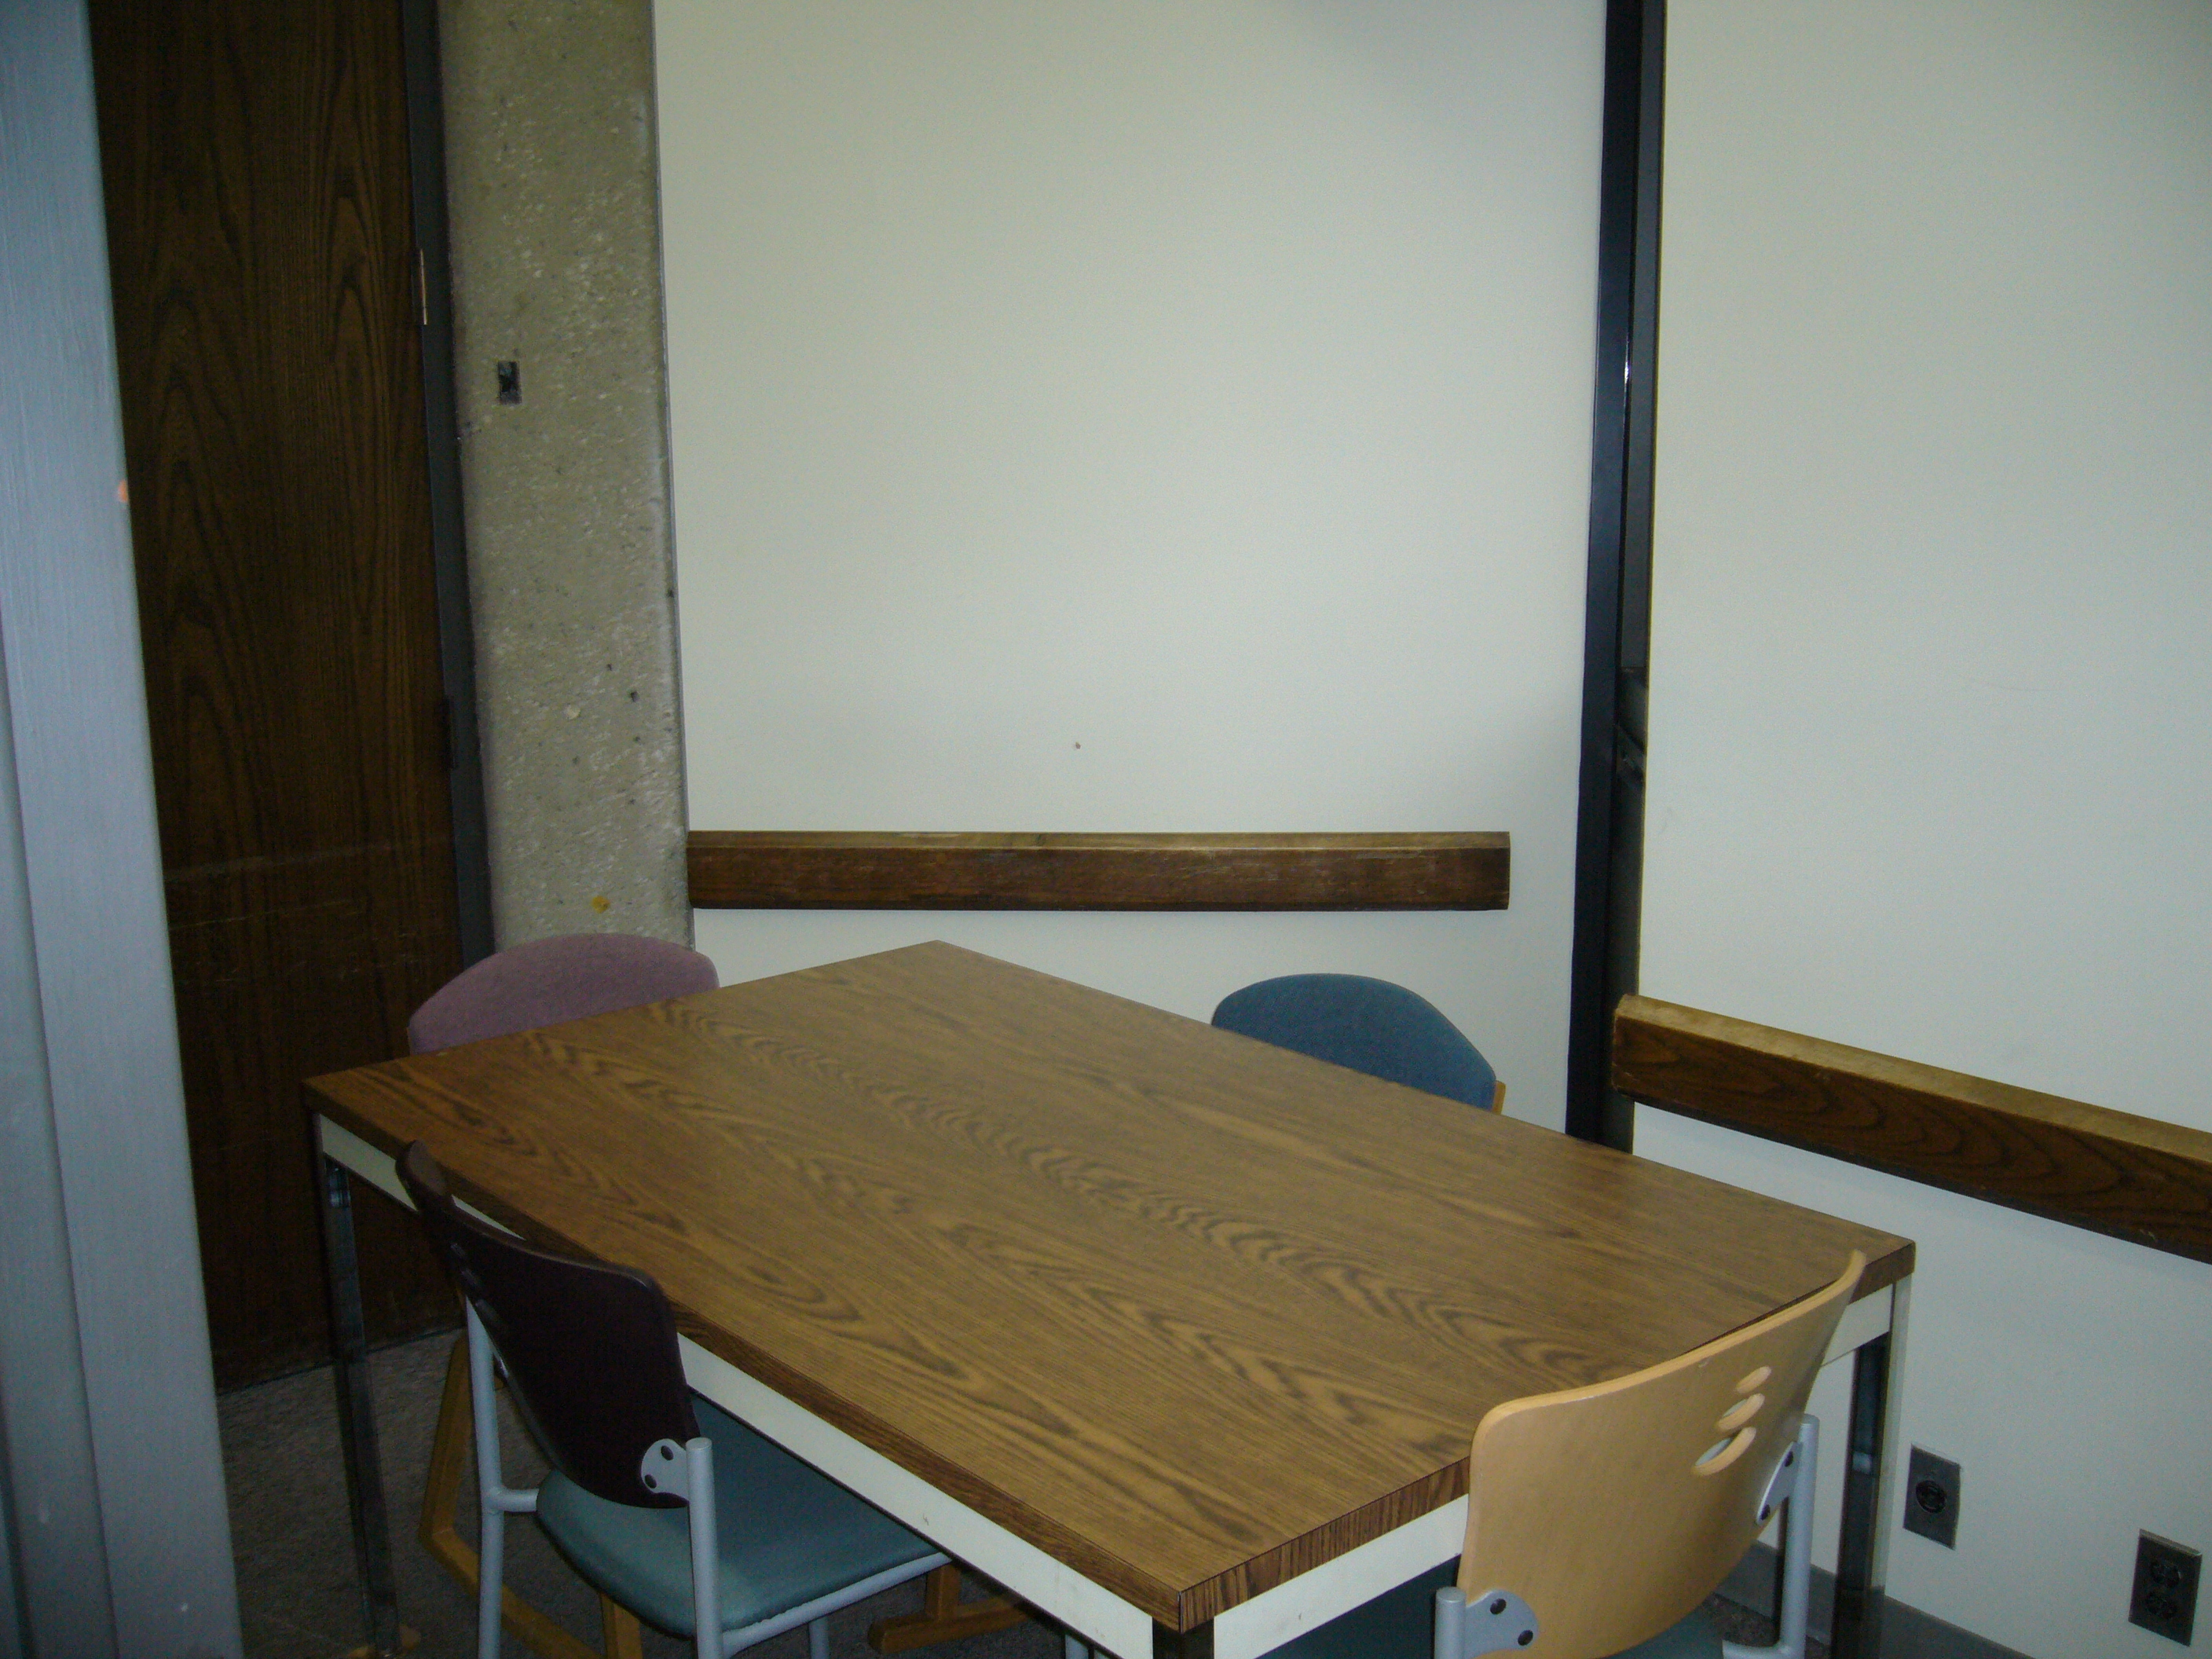 Bierce Library Room 276A